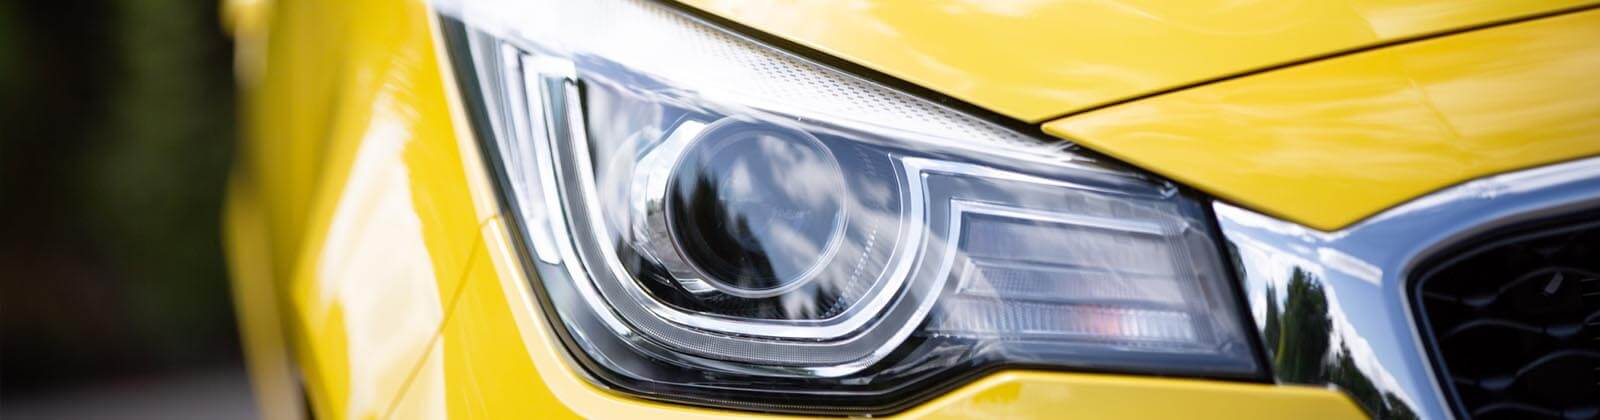 MG3 Headlight